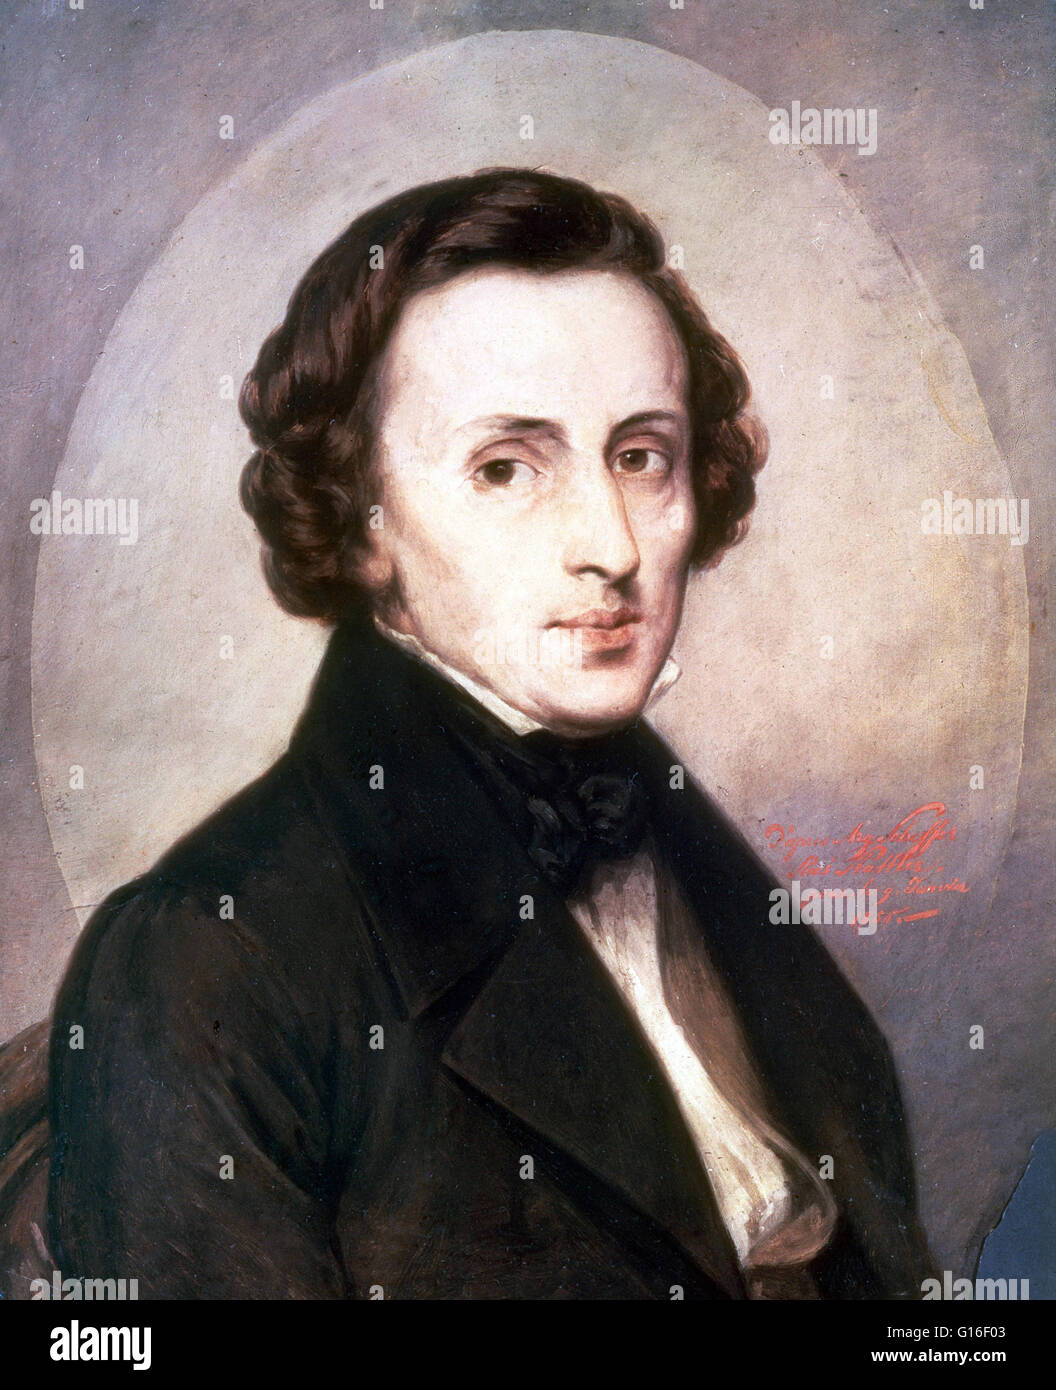 Frédéric François Chopin (March 1, 1810 - October 17, 1849) was a Polish composer and virtuoso pianist. - Stock Image